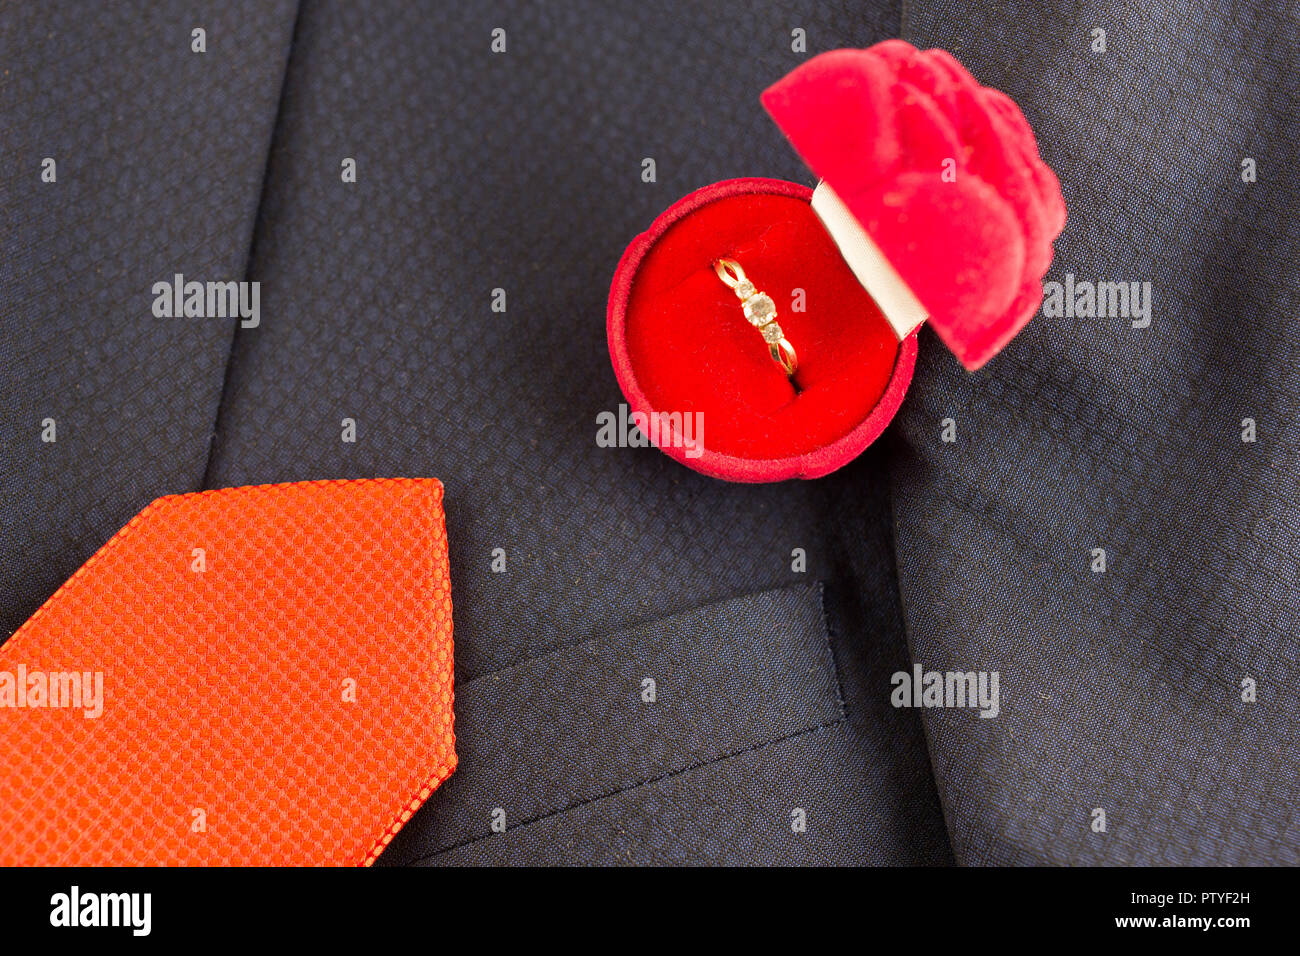 Offer hands and heart, ring tie suit - Stock Image